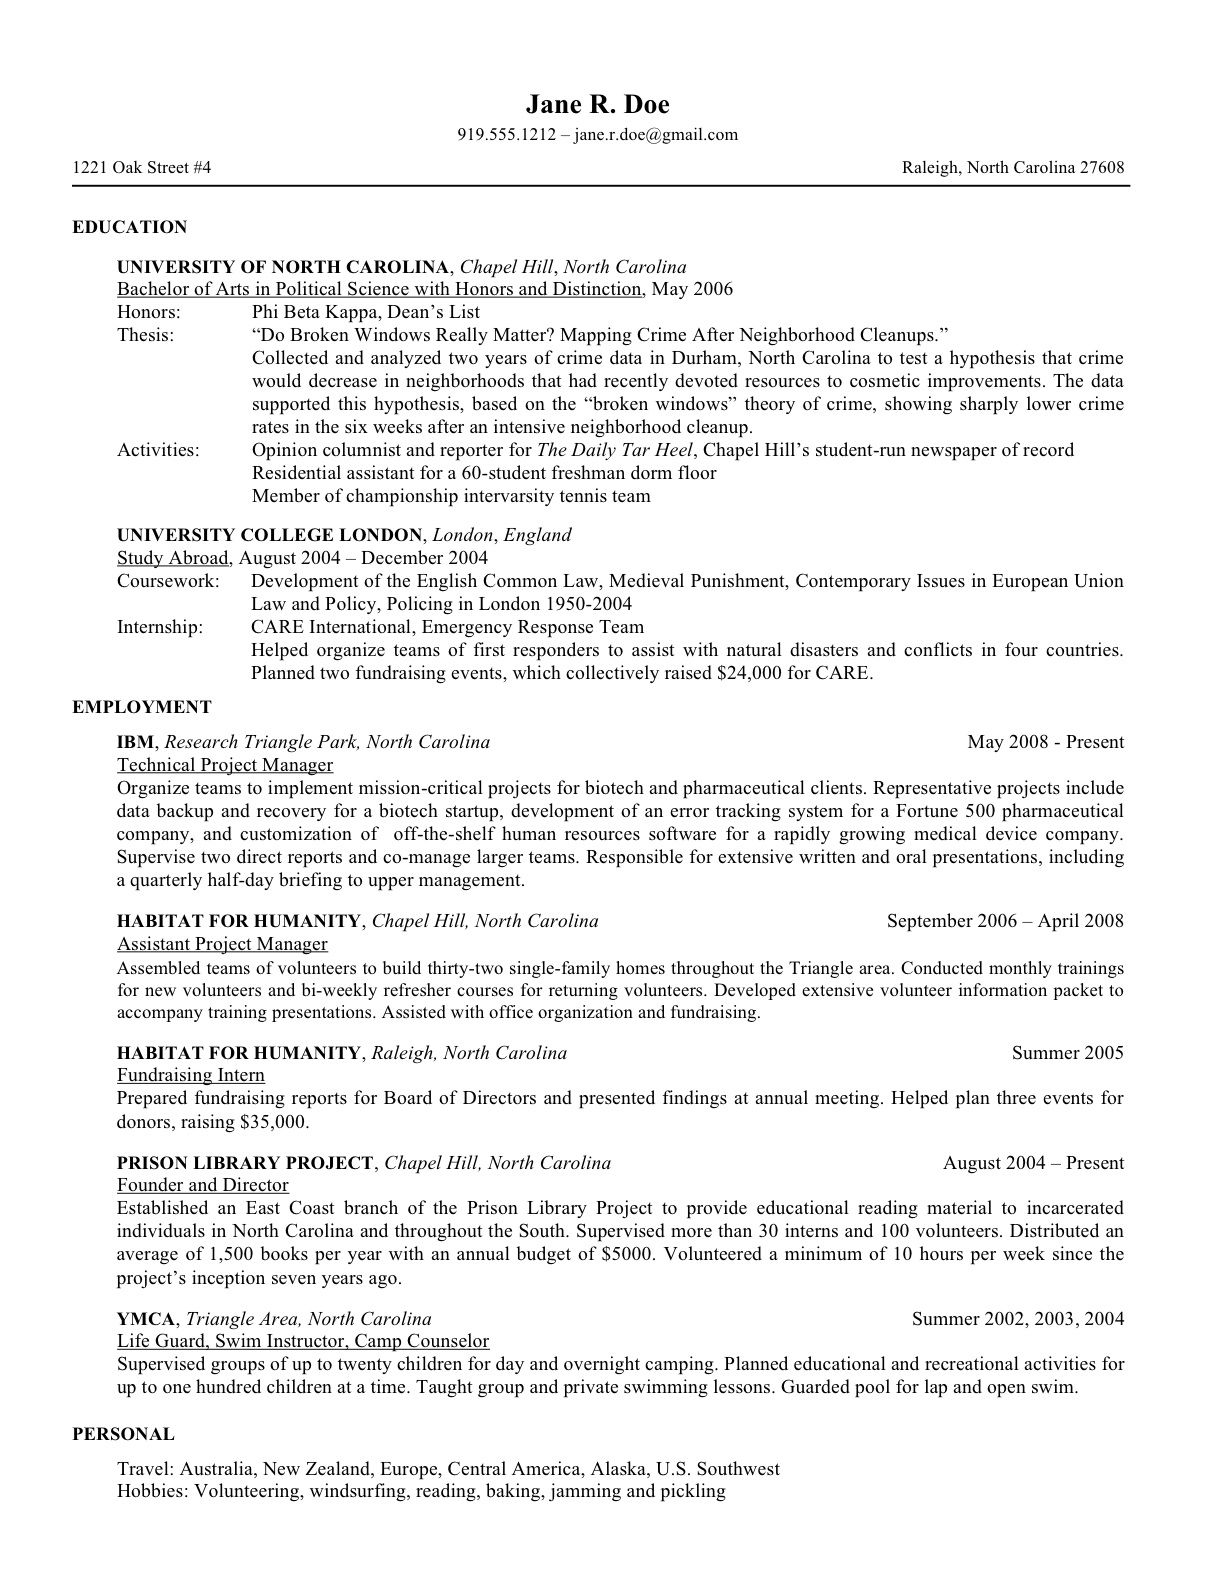 How To Write My Work Experience In A Resumevolunteer Work On Resume  Application Letter Sample